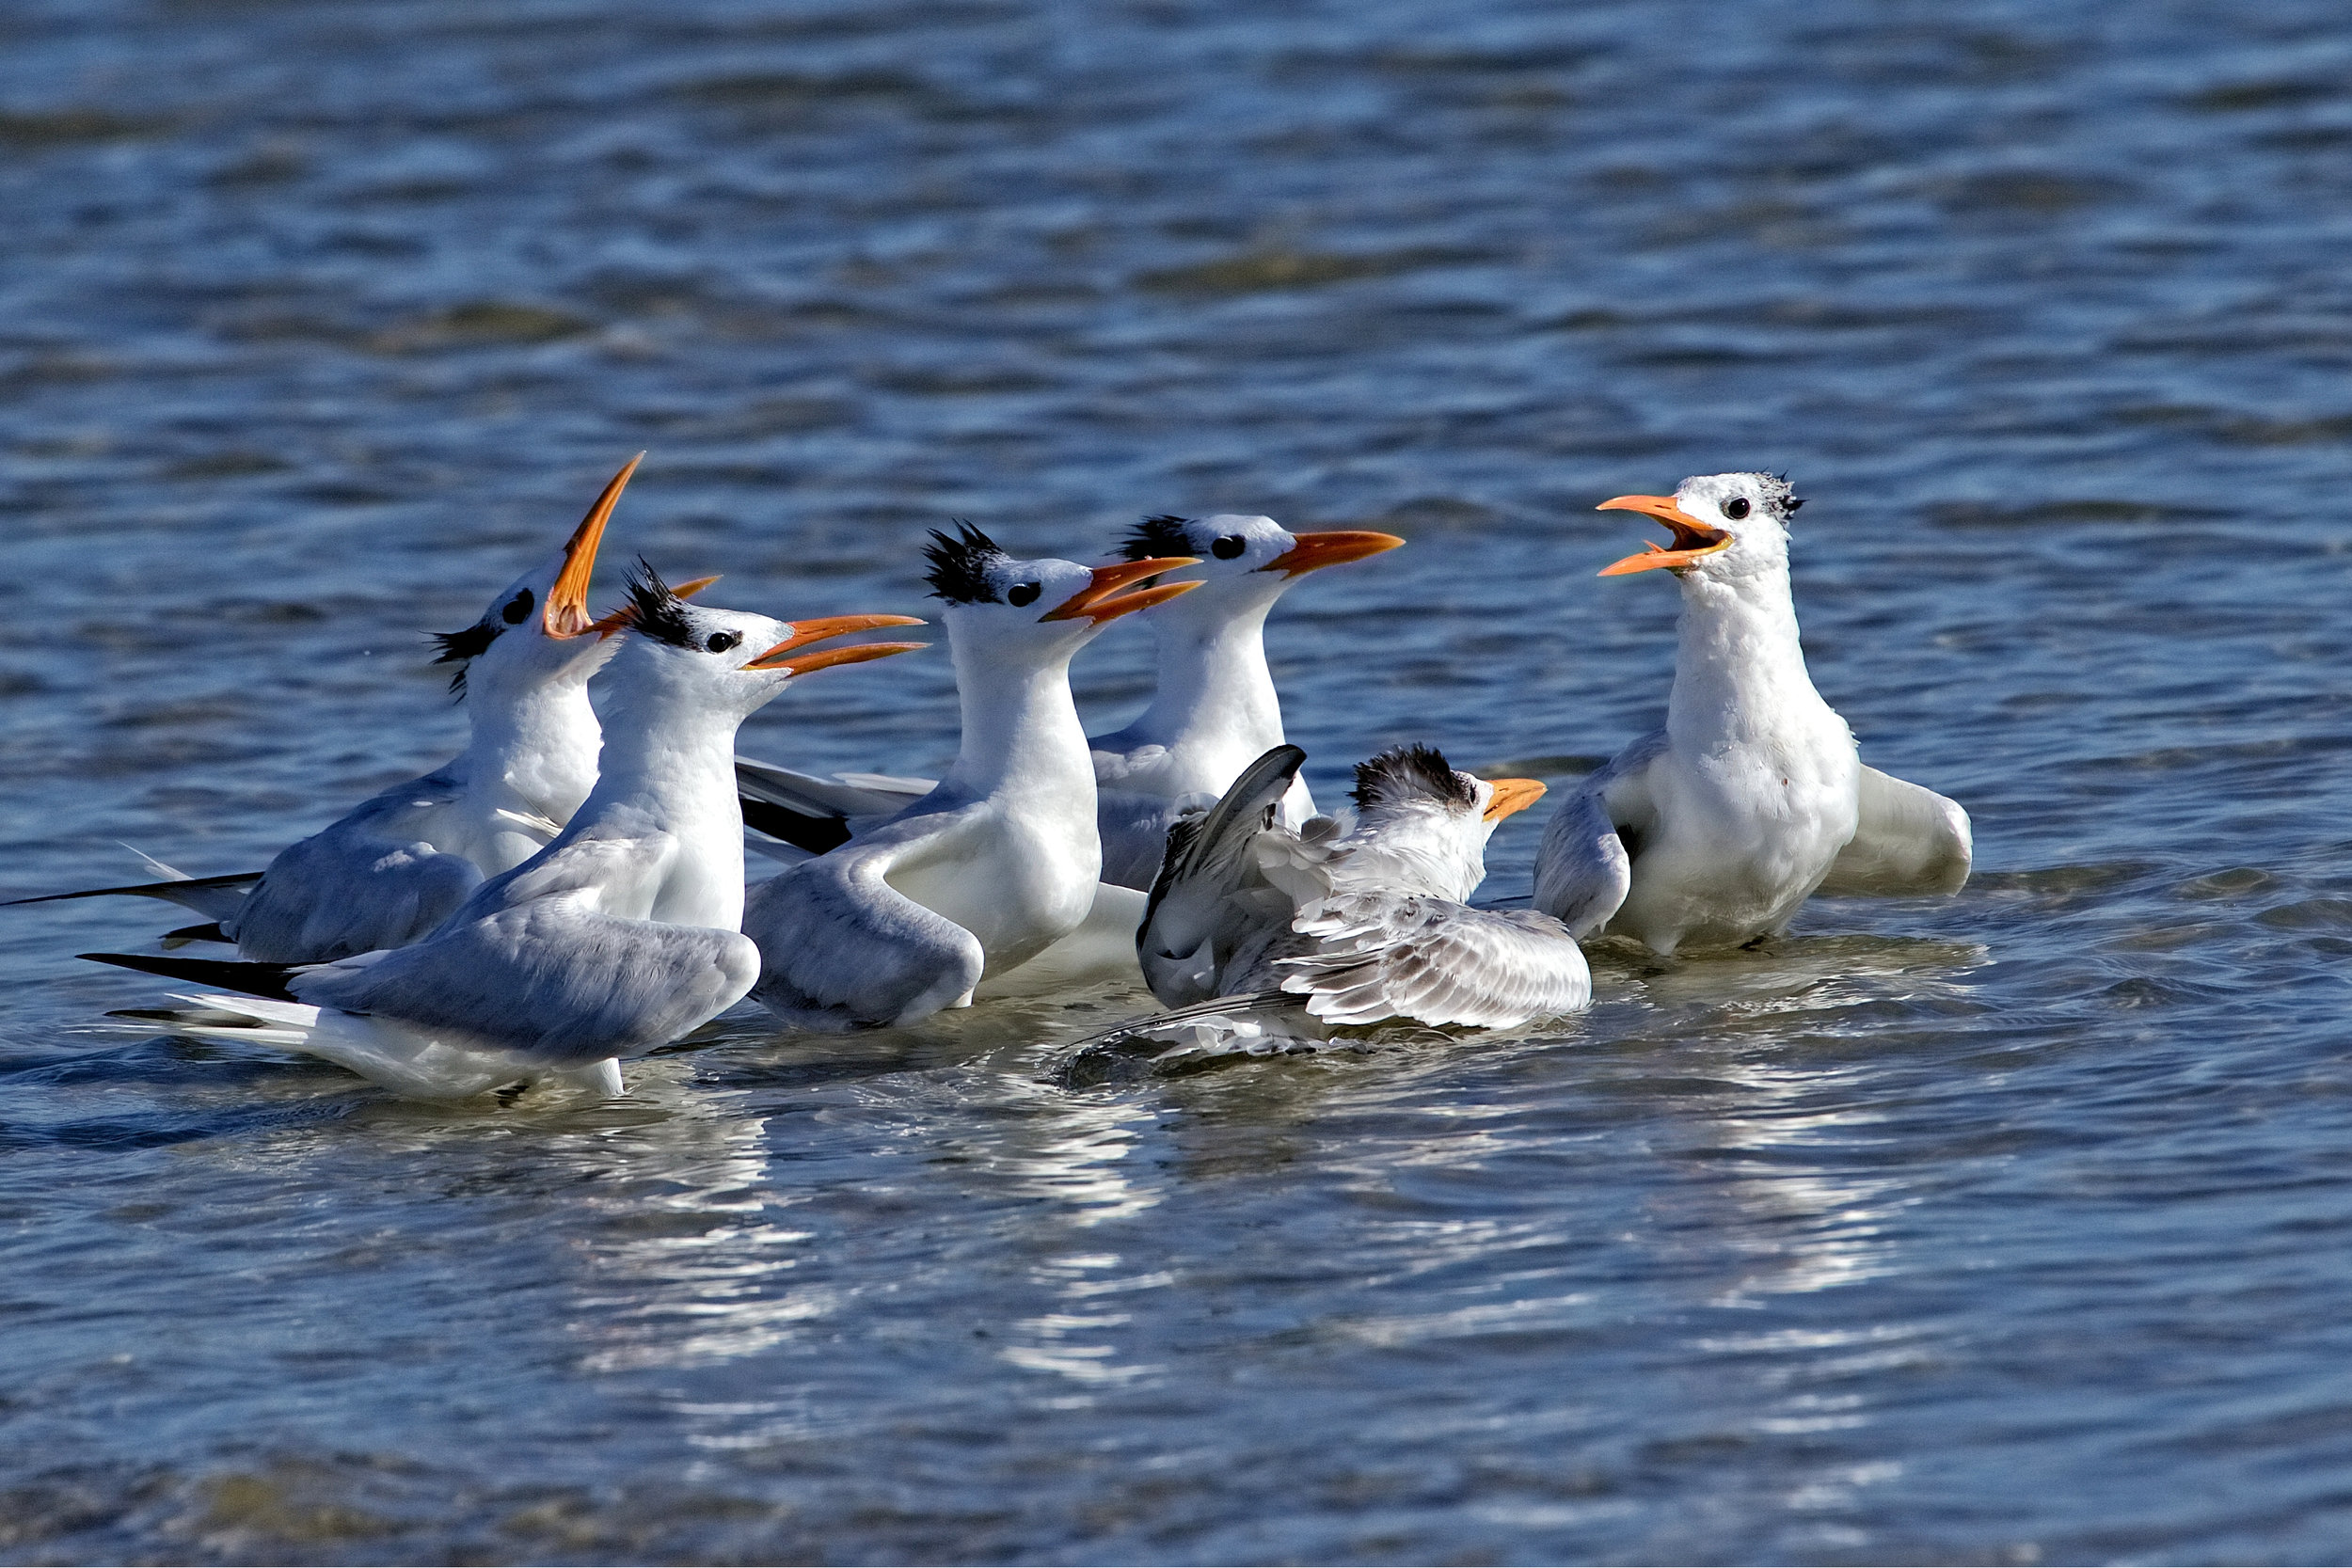 """Thank you for coming to Jr's Baptism""  ...Royal Tern Chick gets ""baptized"" in the Atlantic Ocean Surf.."